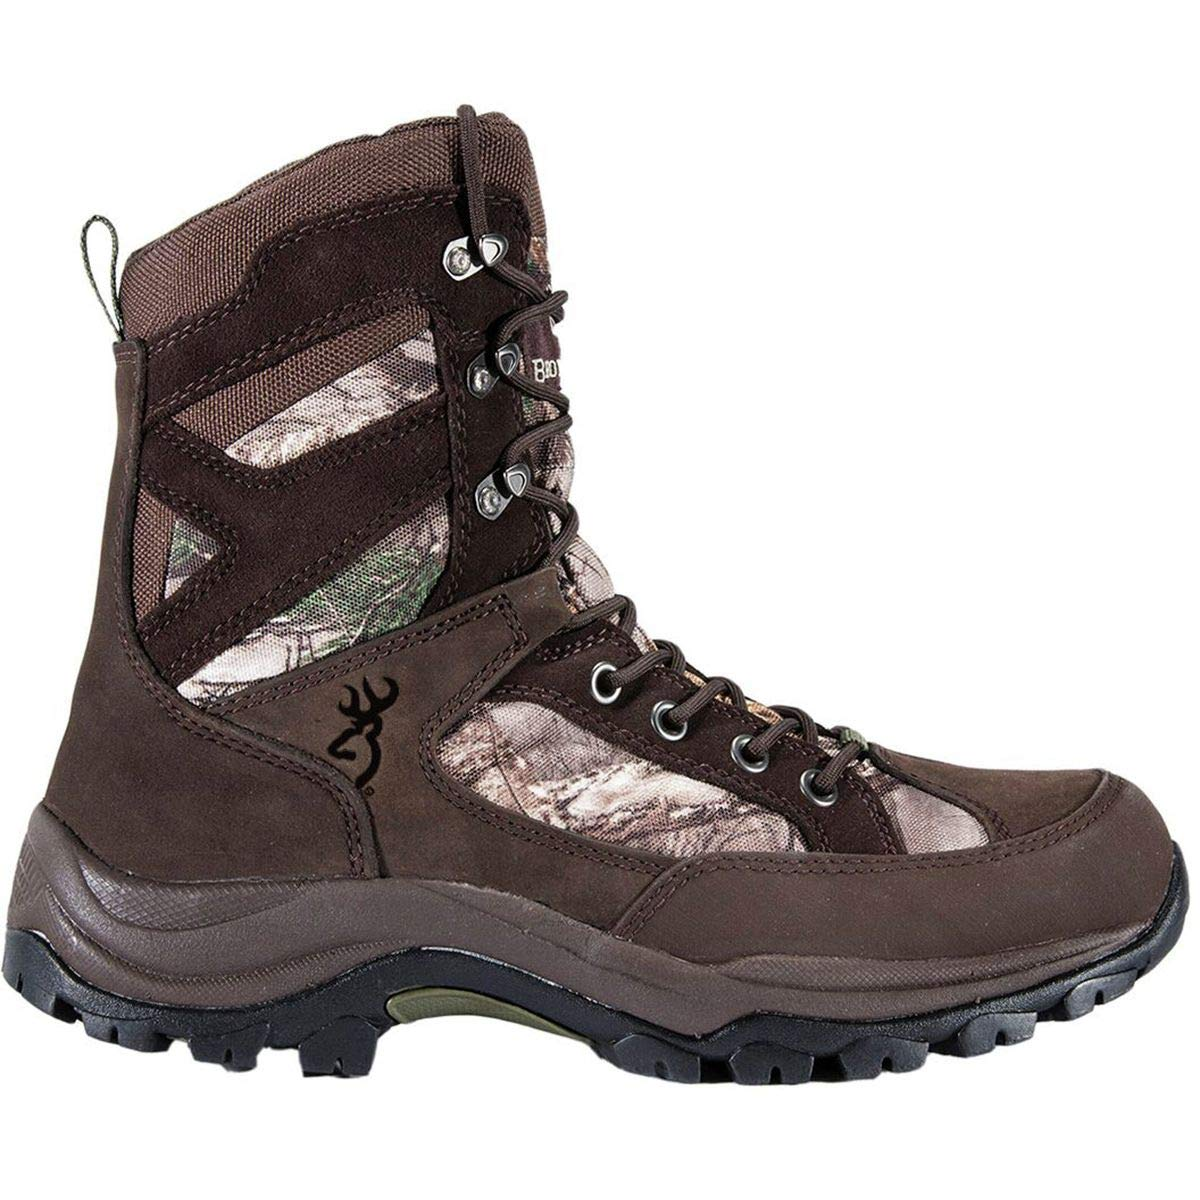 Browning Buck Pursuit 8in 400g Insulated Boot - Men's Bracken/Realtree Xtra, 10.5